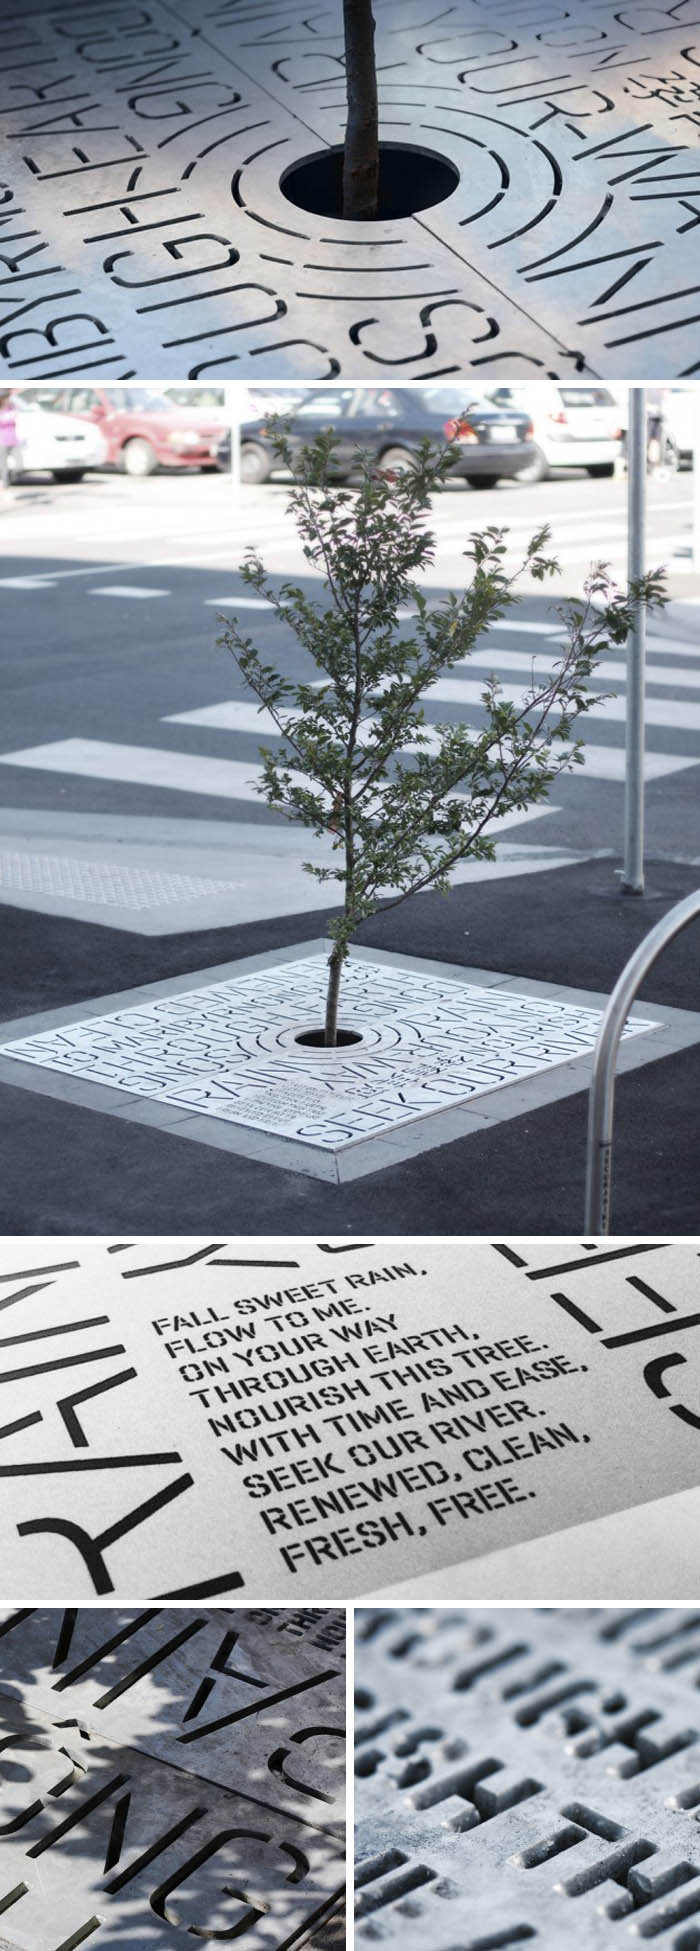 Typography, cool tree grates, environmental graphics, Melbourne, Australia, Typography in architecture